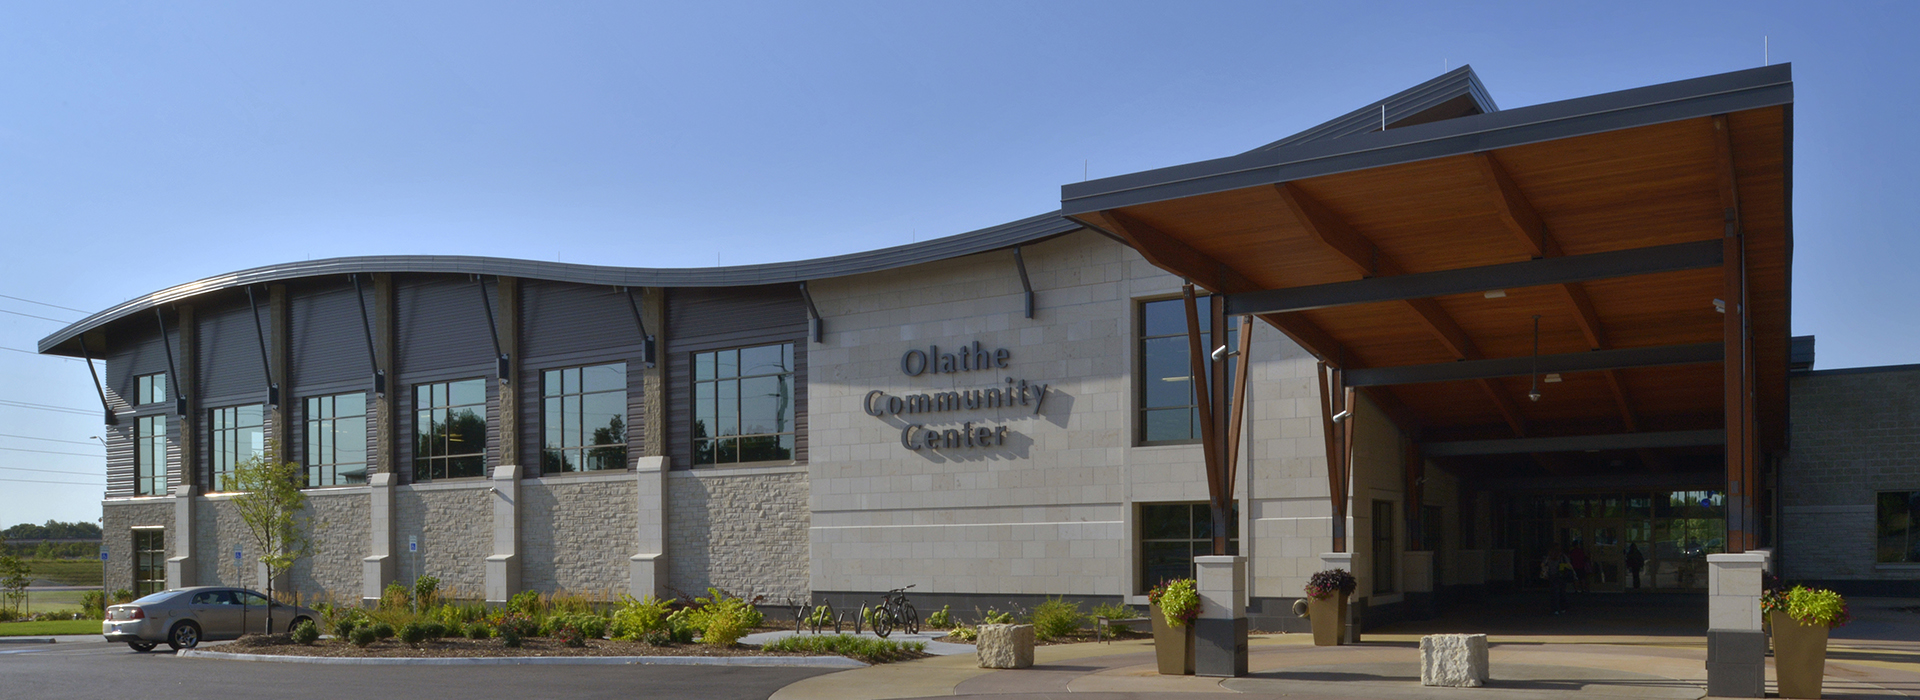 olathe community center